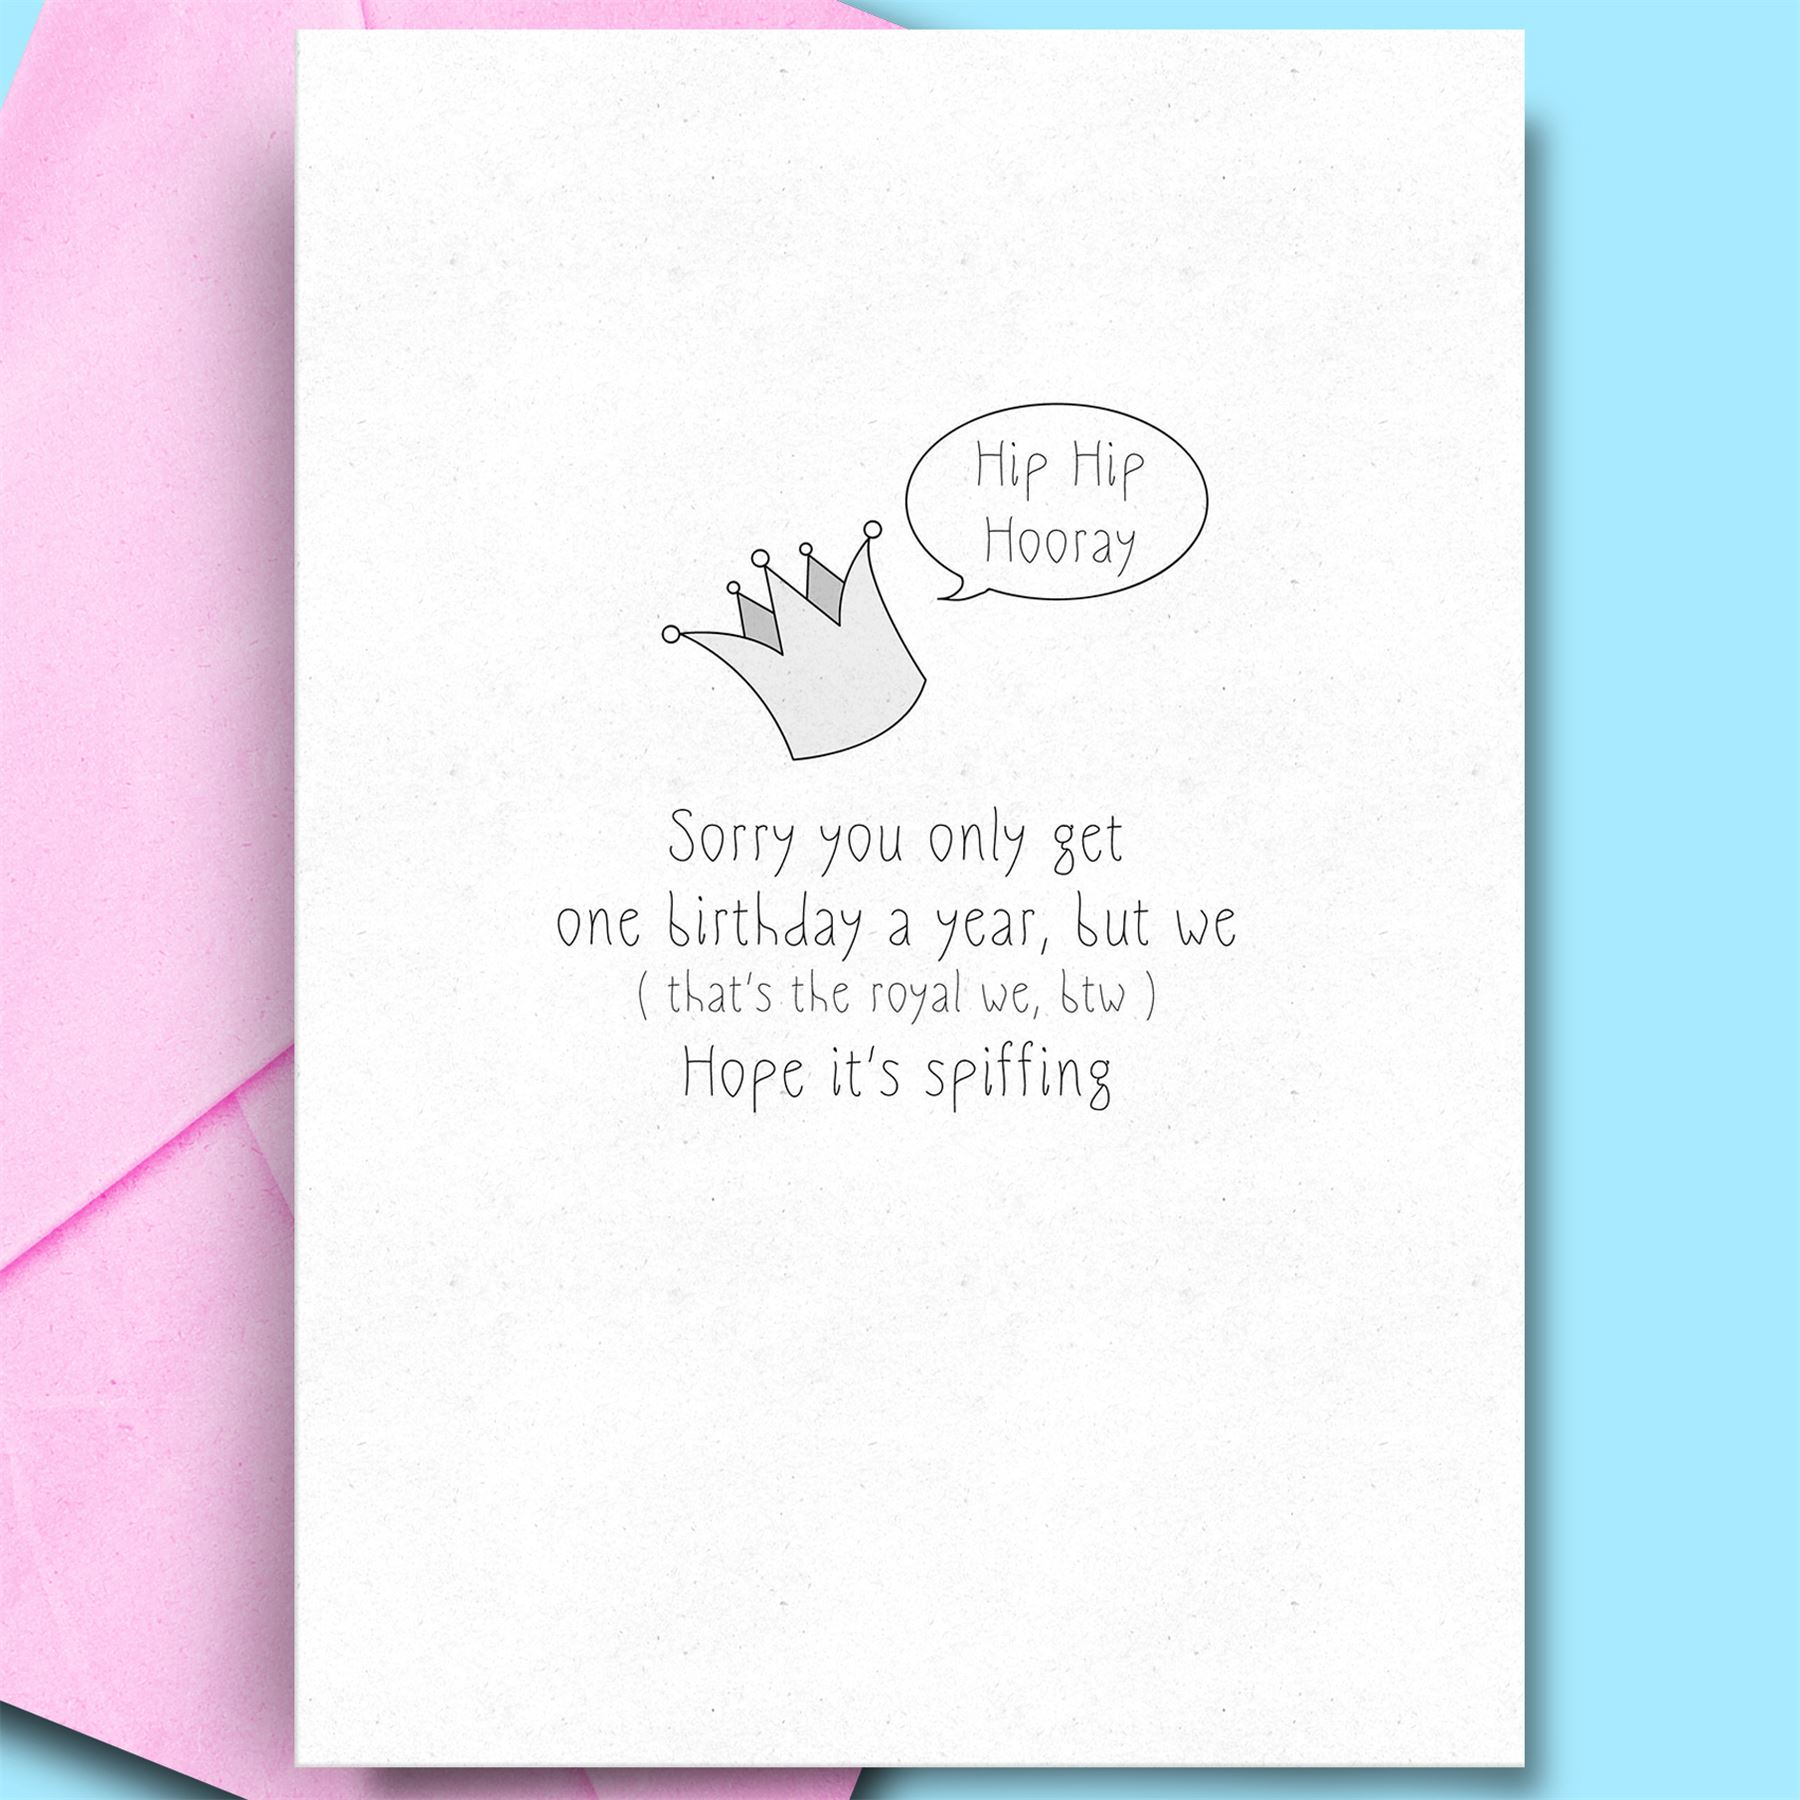 Astounding Funny Birthday Cards Girlfriend Adult Cards For Bestfriend Rude Personalised Birthday Cards Cominlily Jamesorg